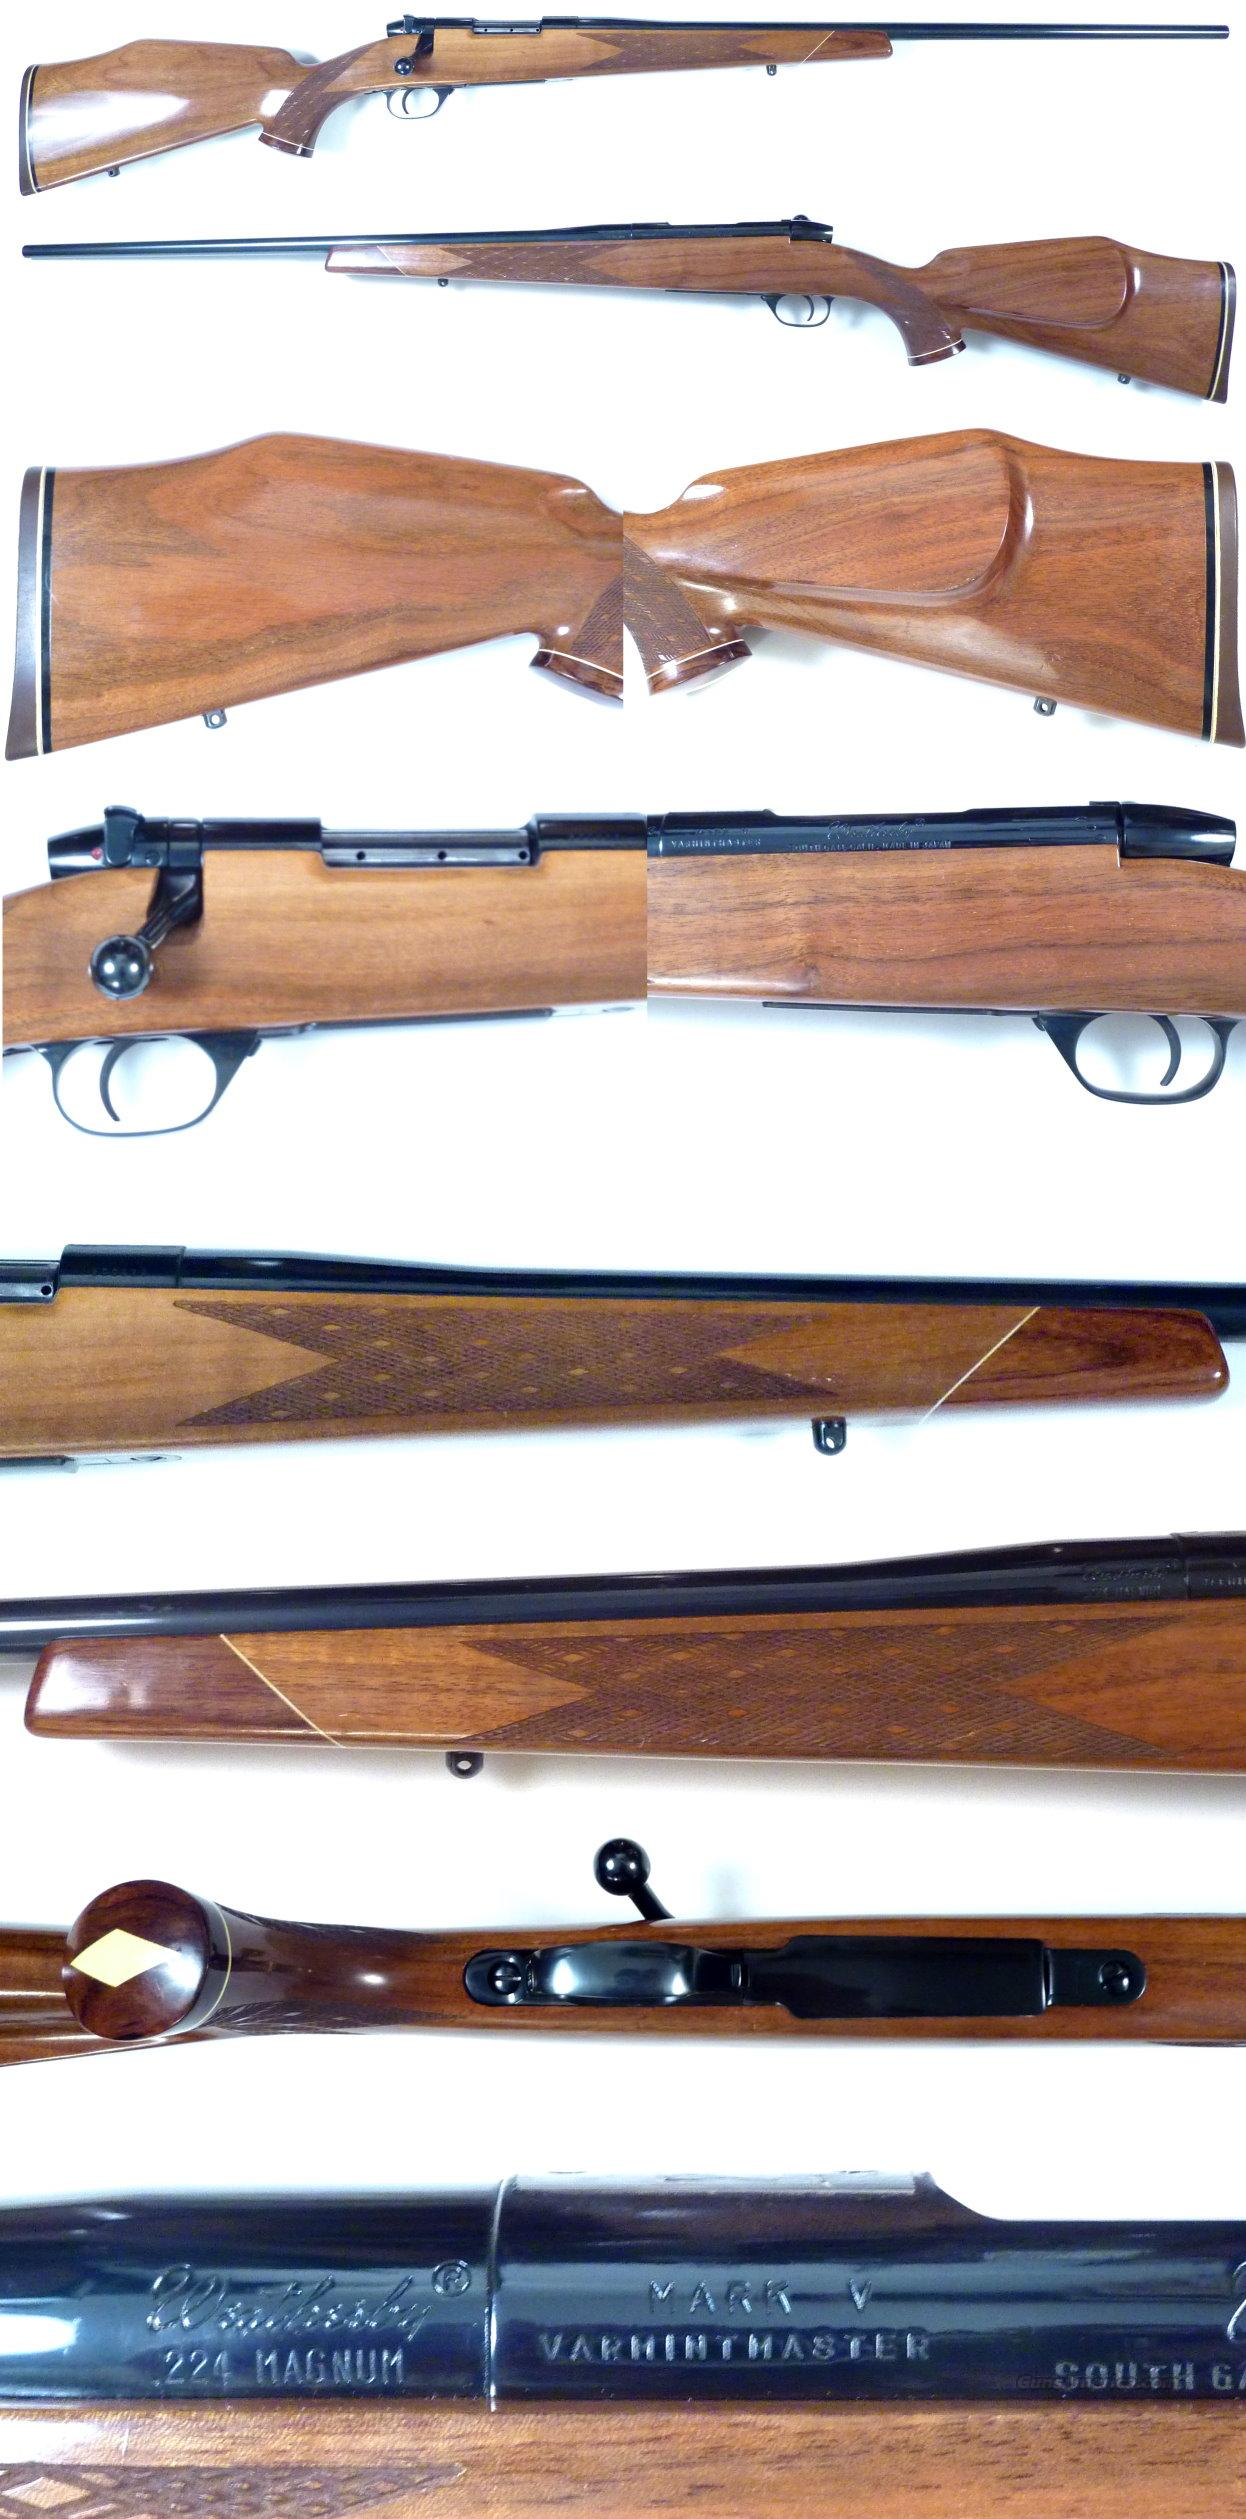 Weatherby Varmentmaster 224 exc cond!  Guns > Rifles > Weatherby Rifles > Sporting